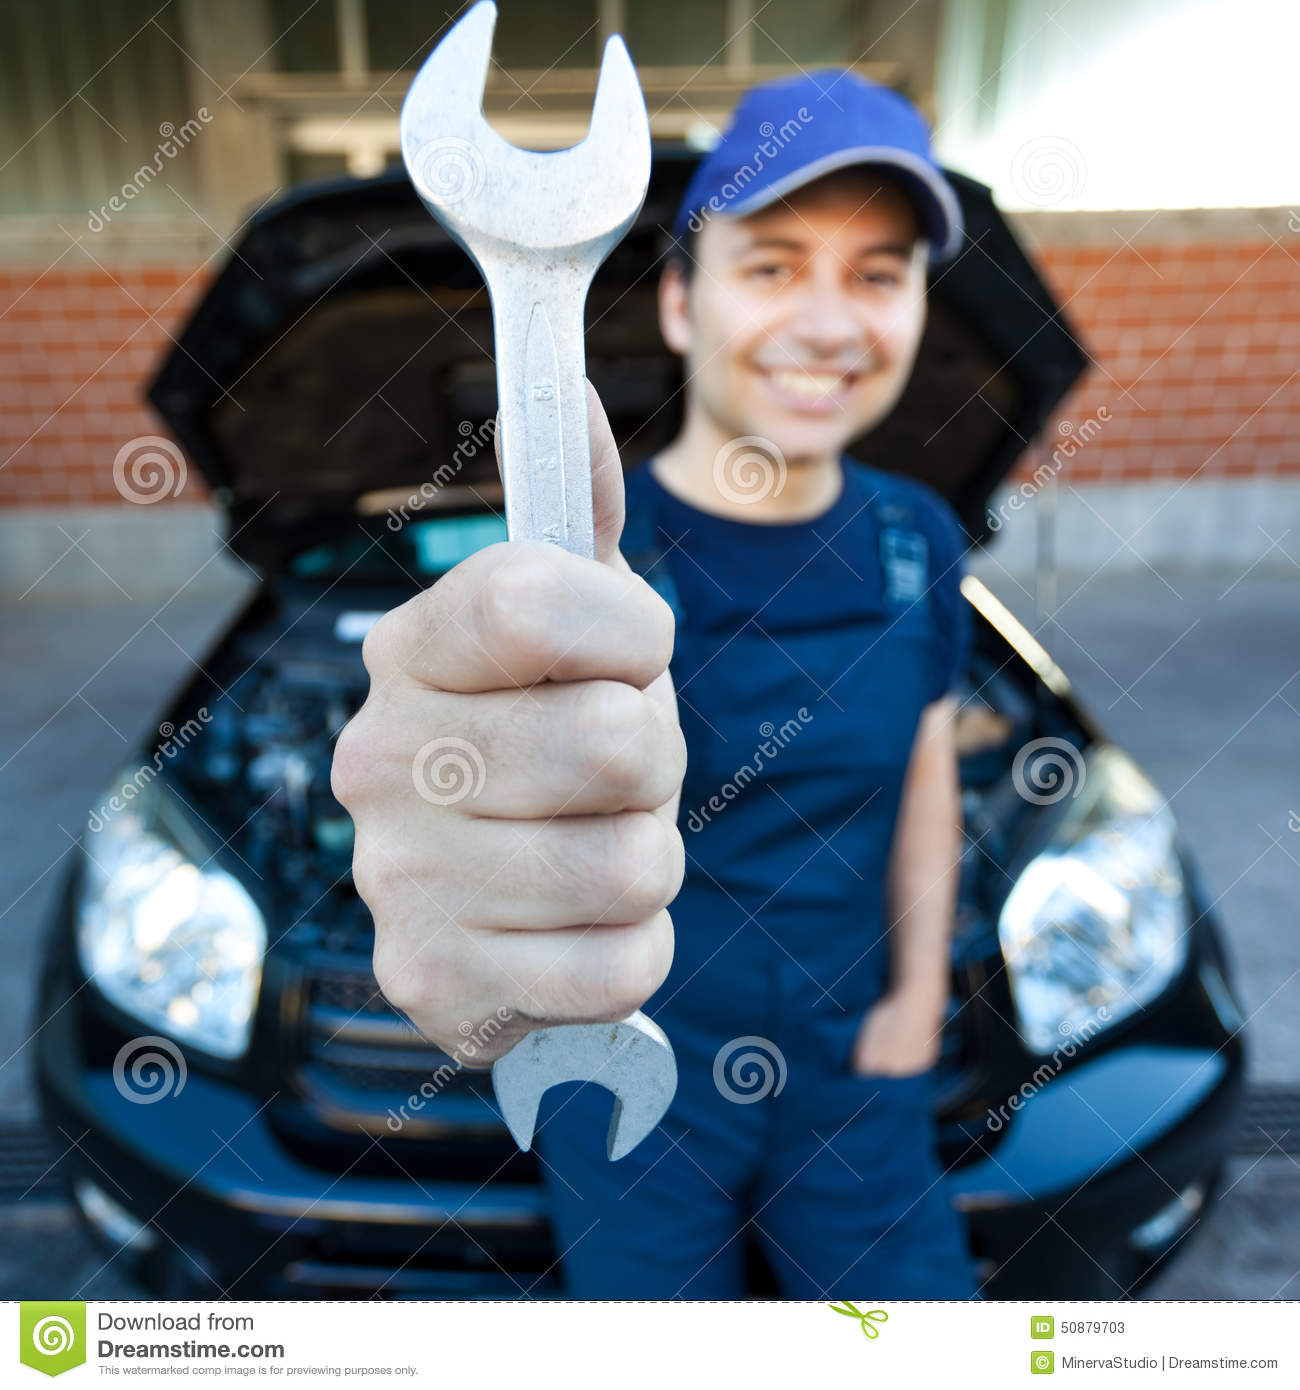 Mechanic holding a wrench at a car garage